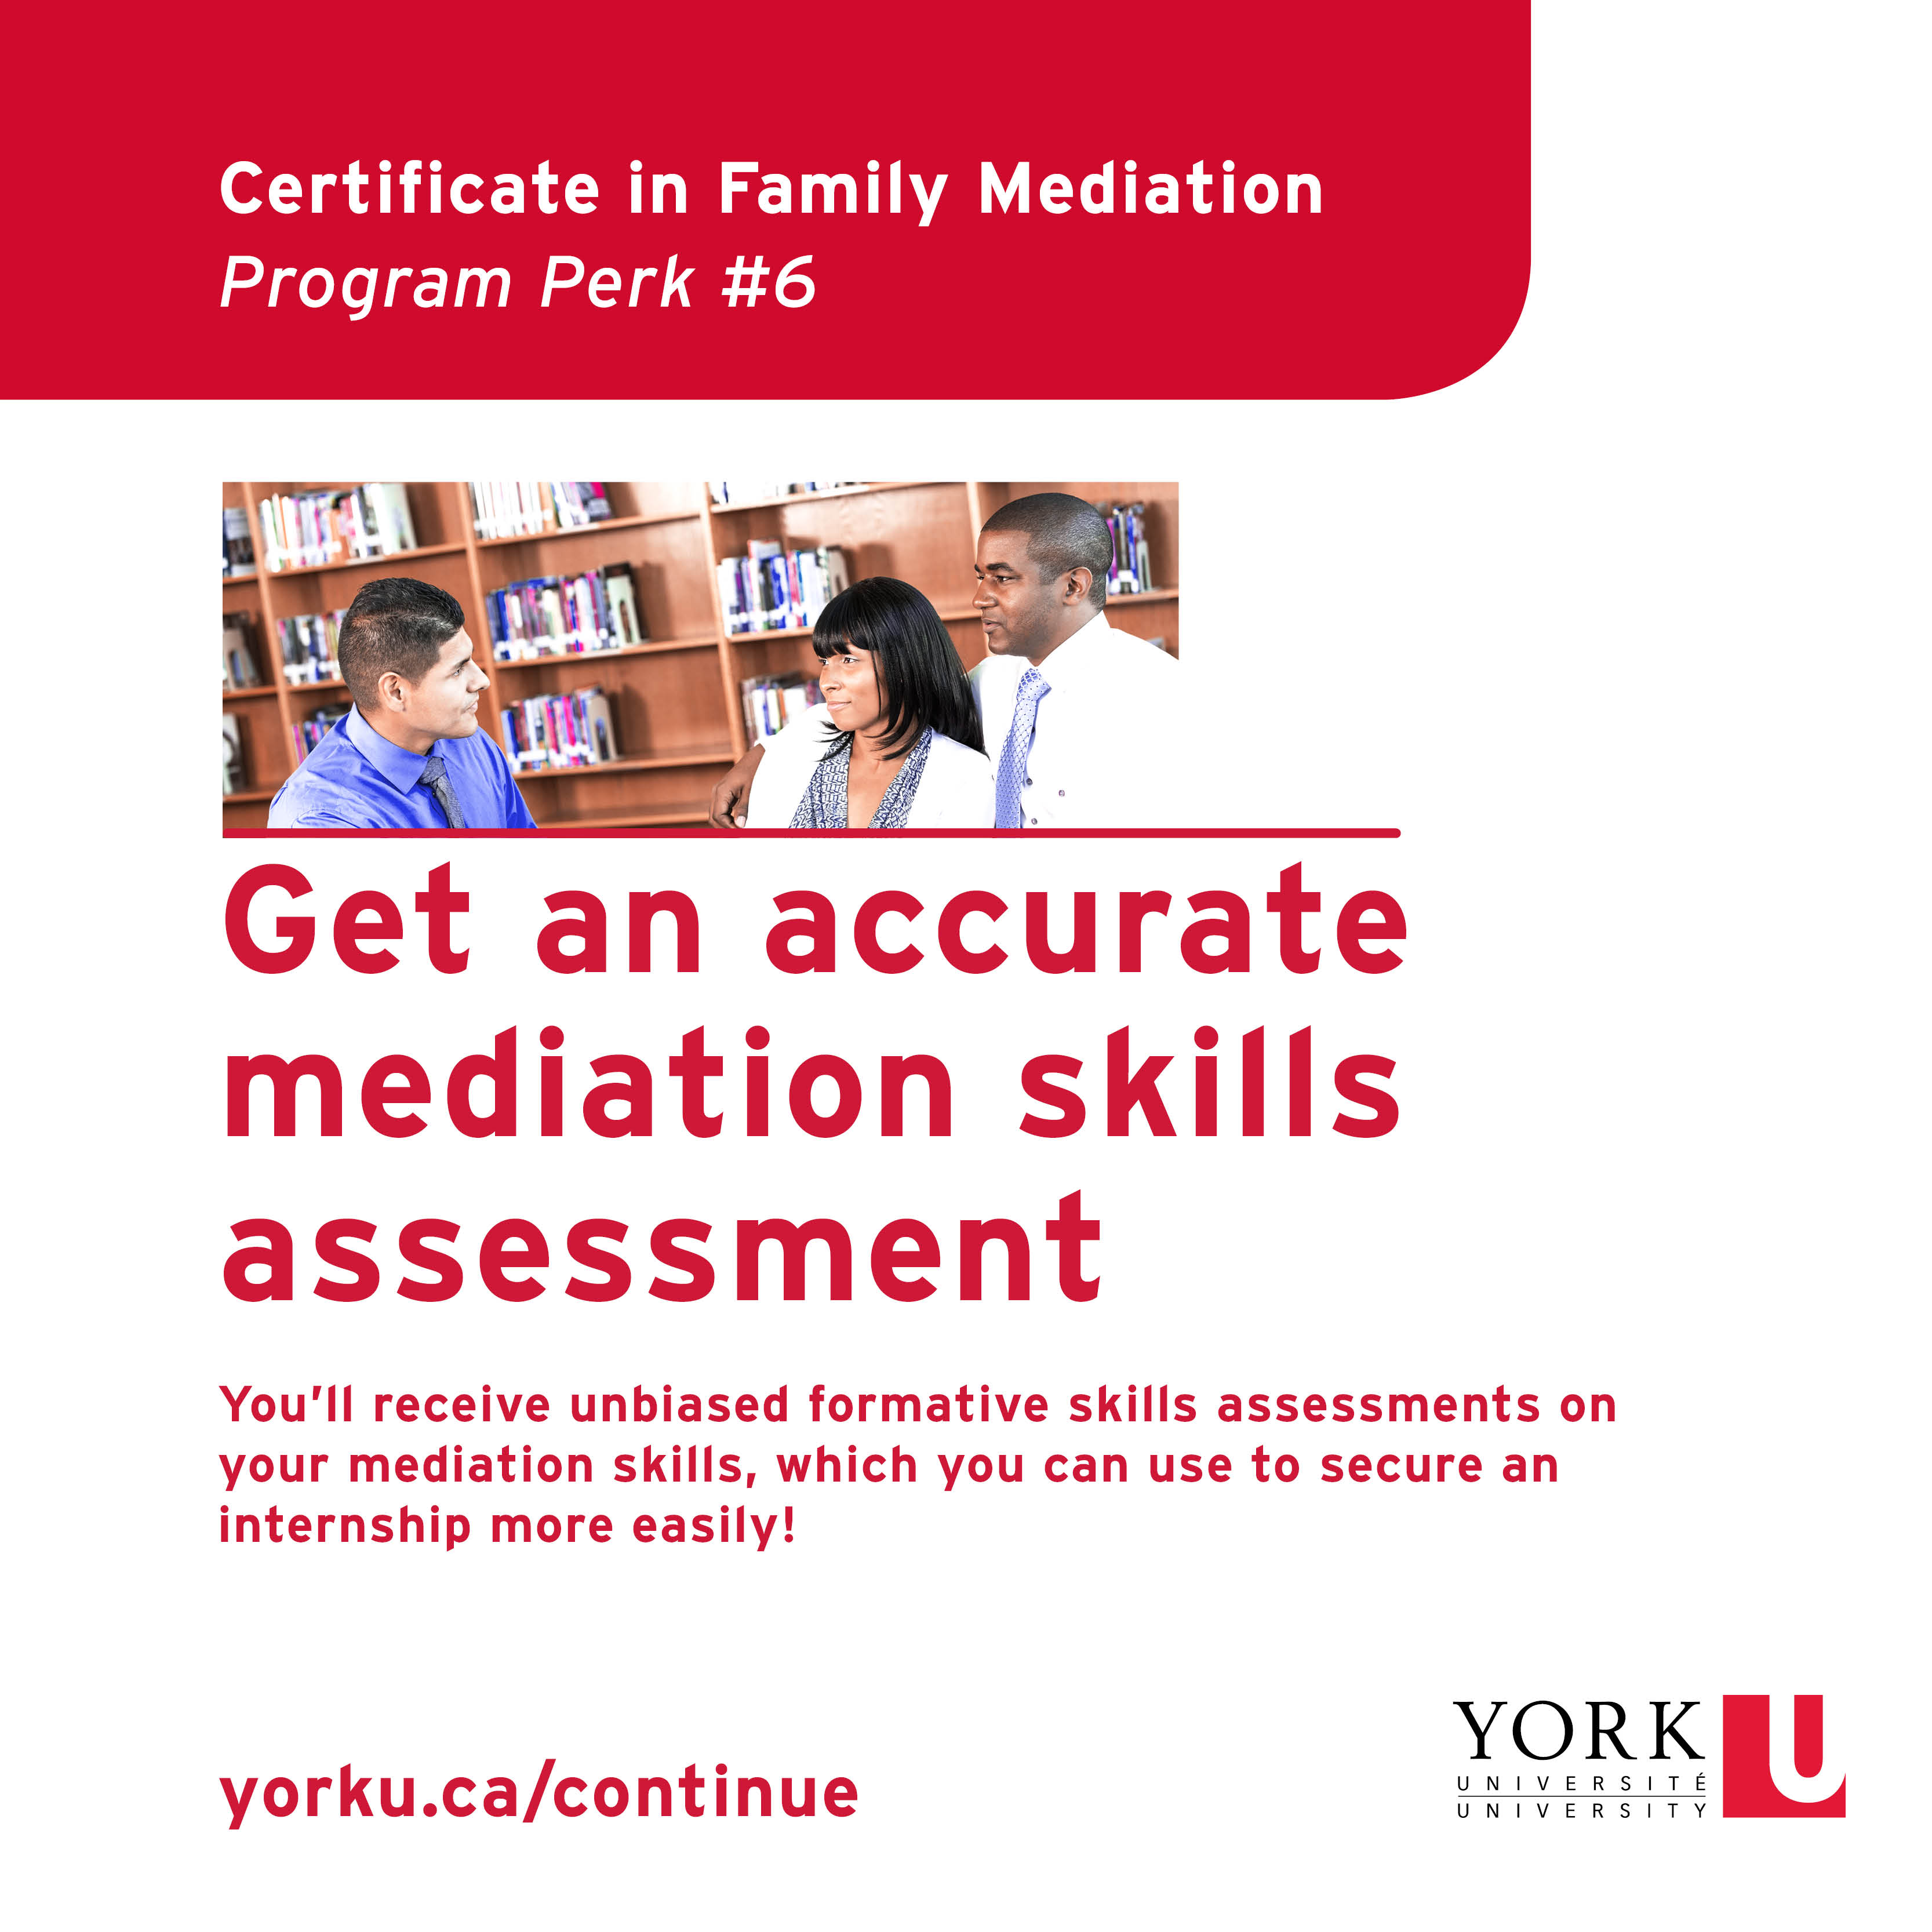 Get an accurate mediation skills assessment